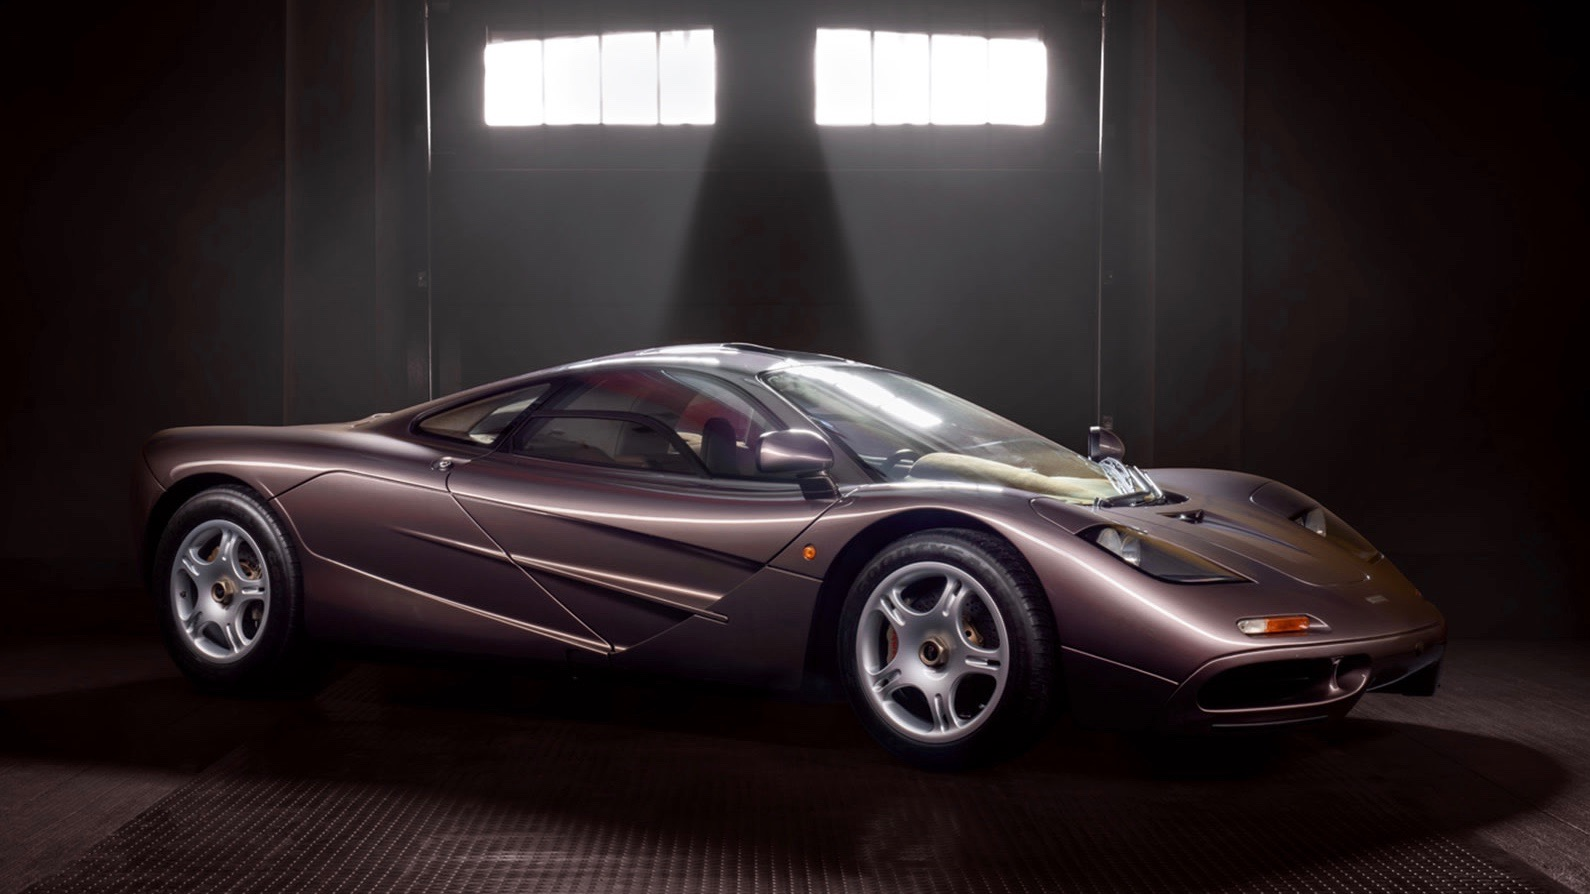 time-capsule-1995-mclaren-f1-with-242-miles-headed-to-auction